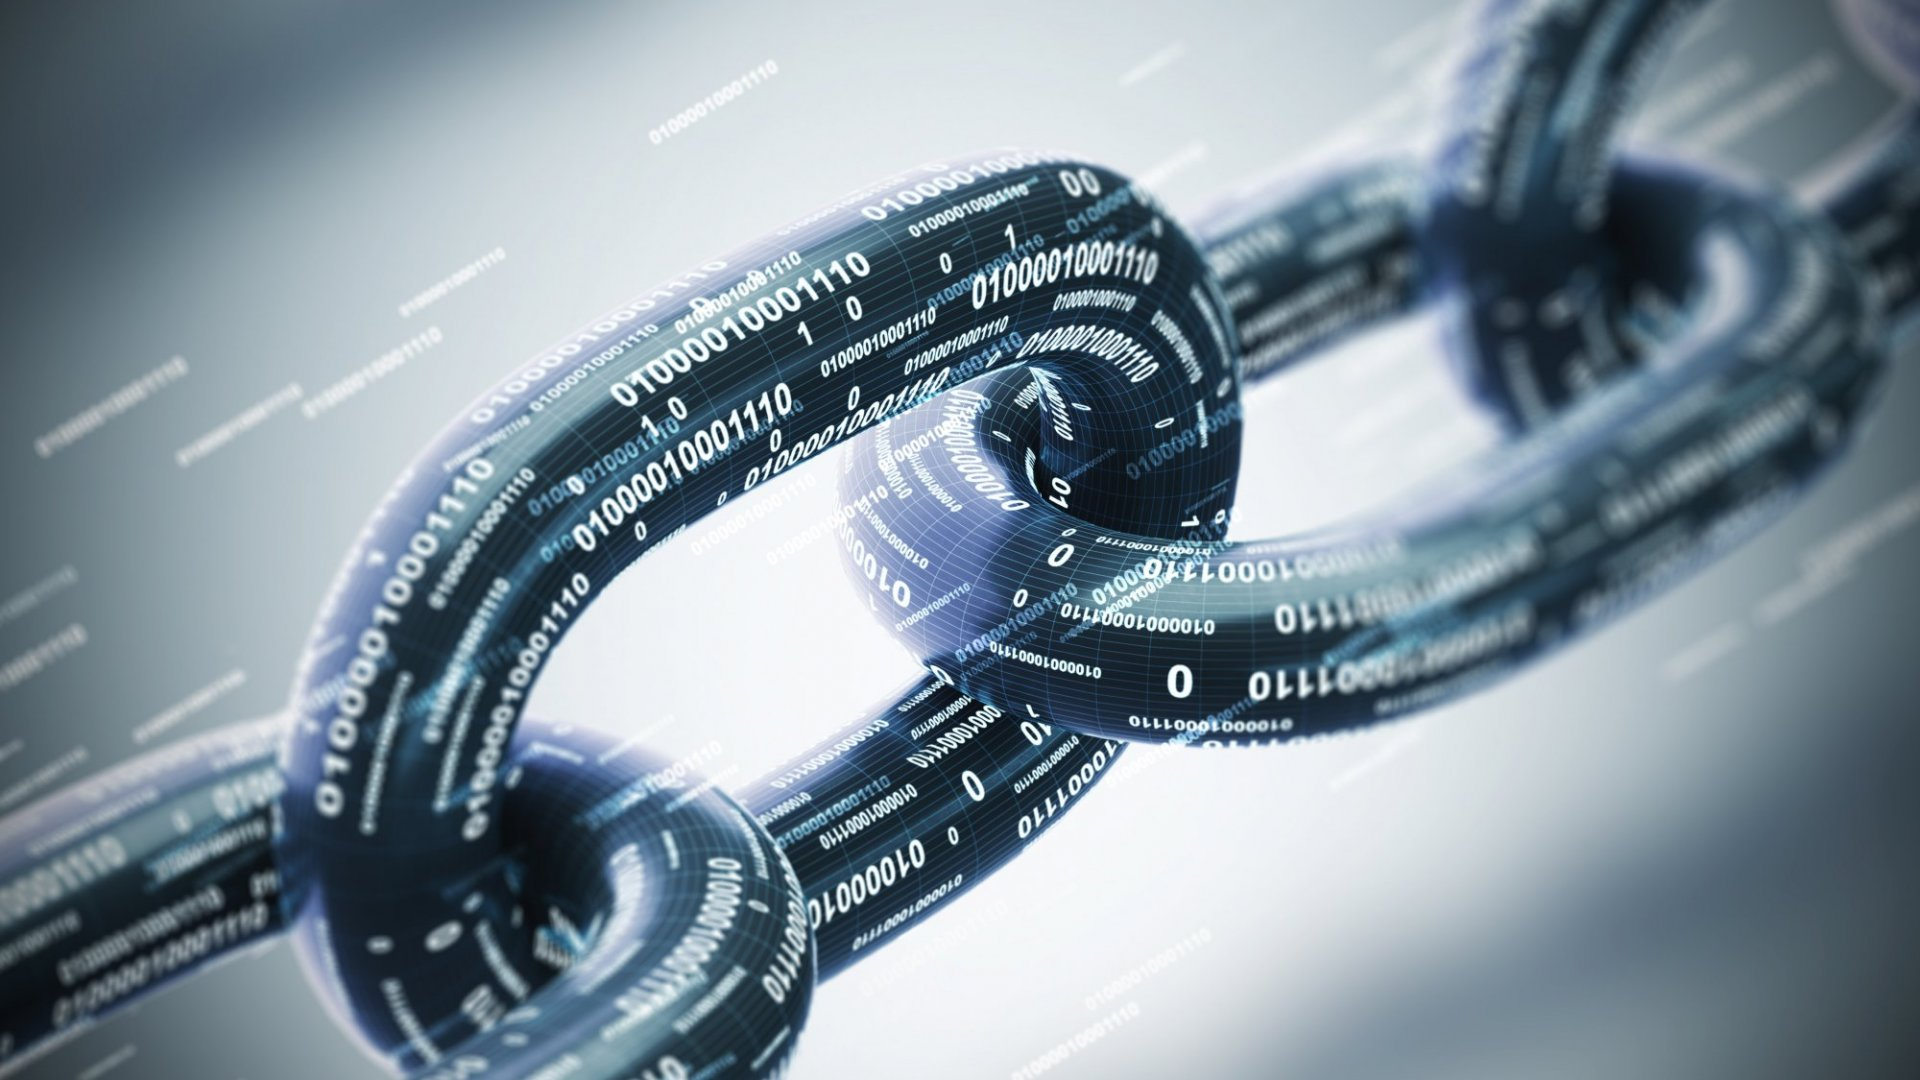 Blockchain May Hold the Secret to Protecting Your Identity